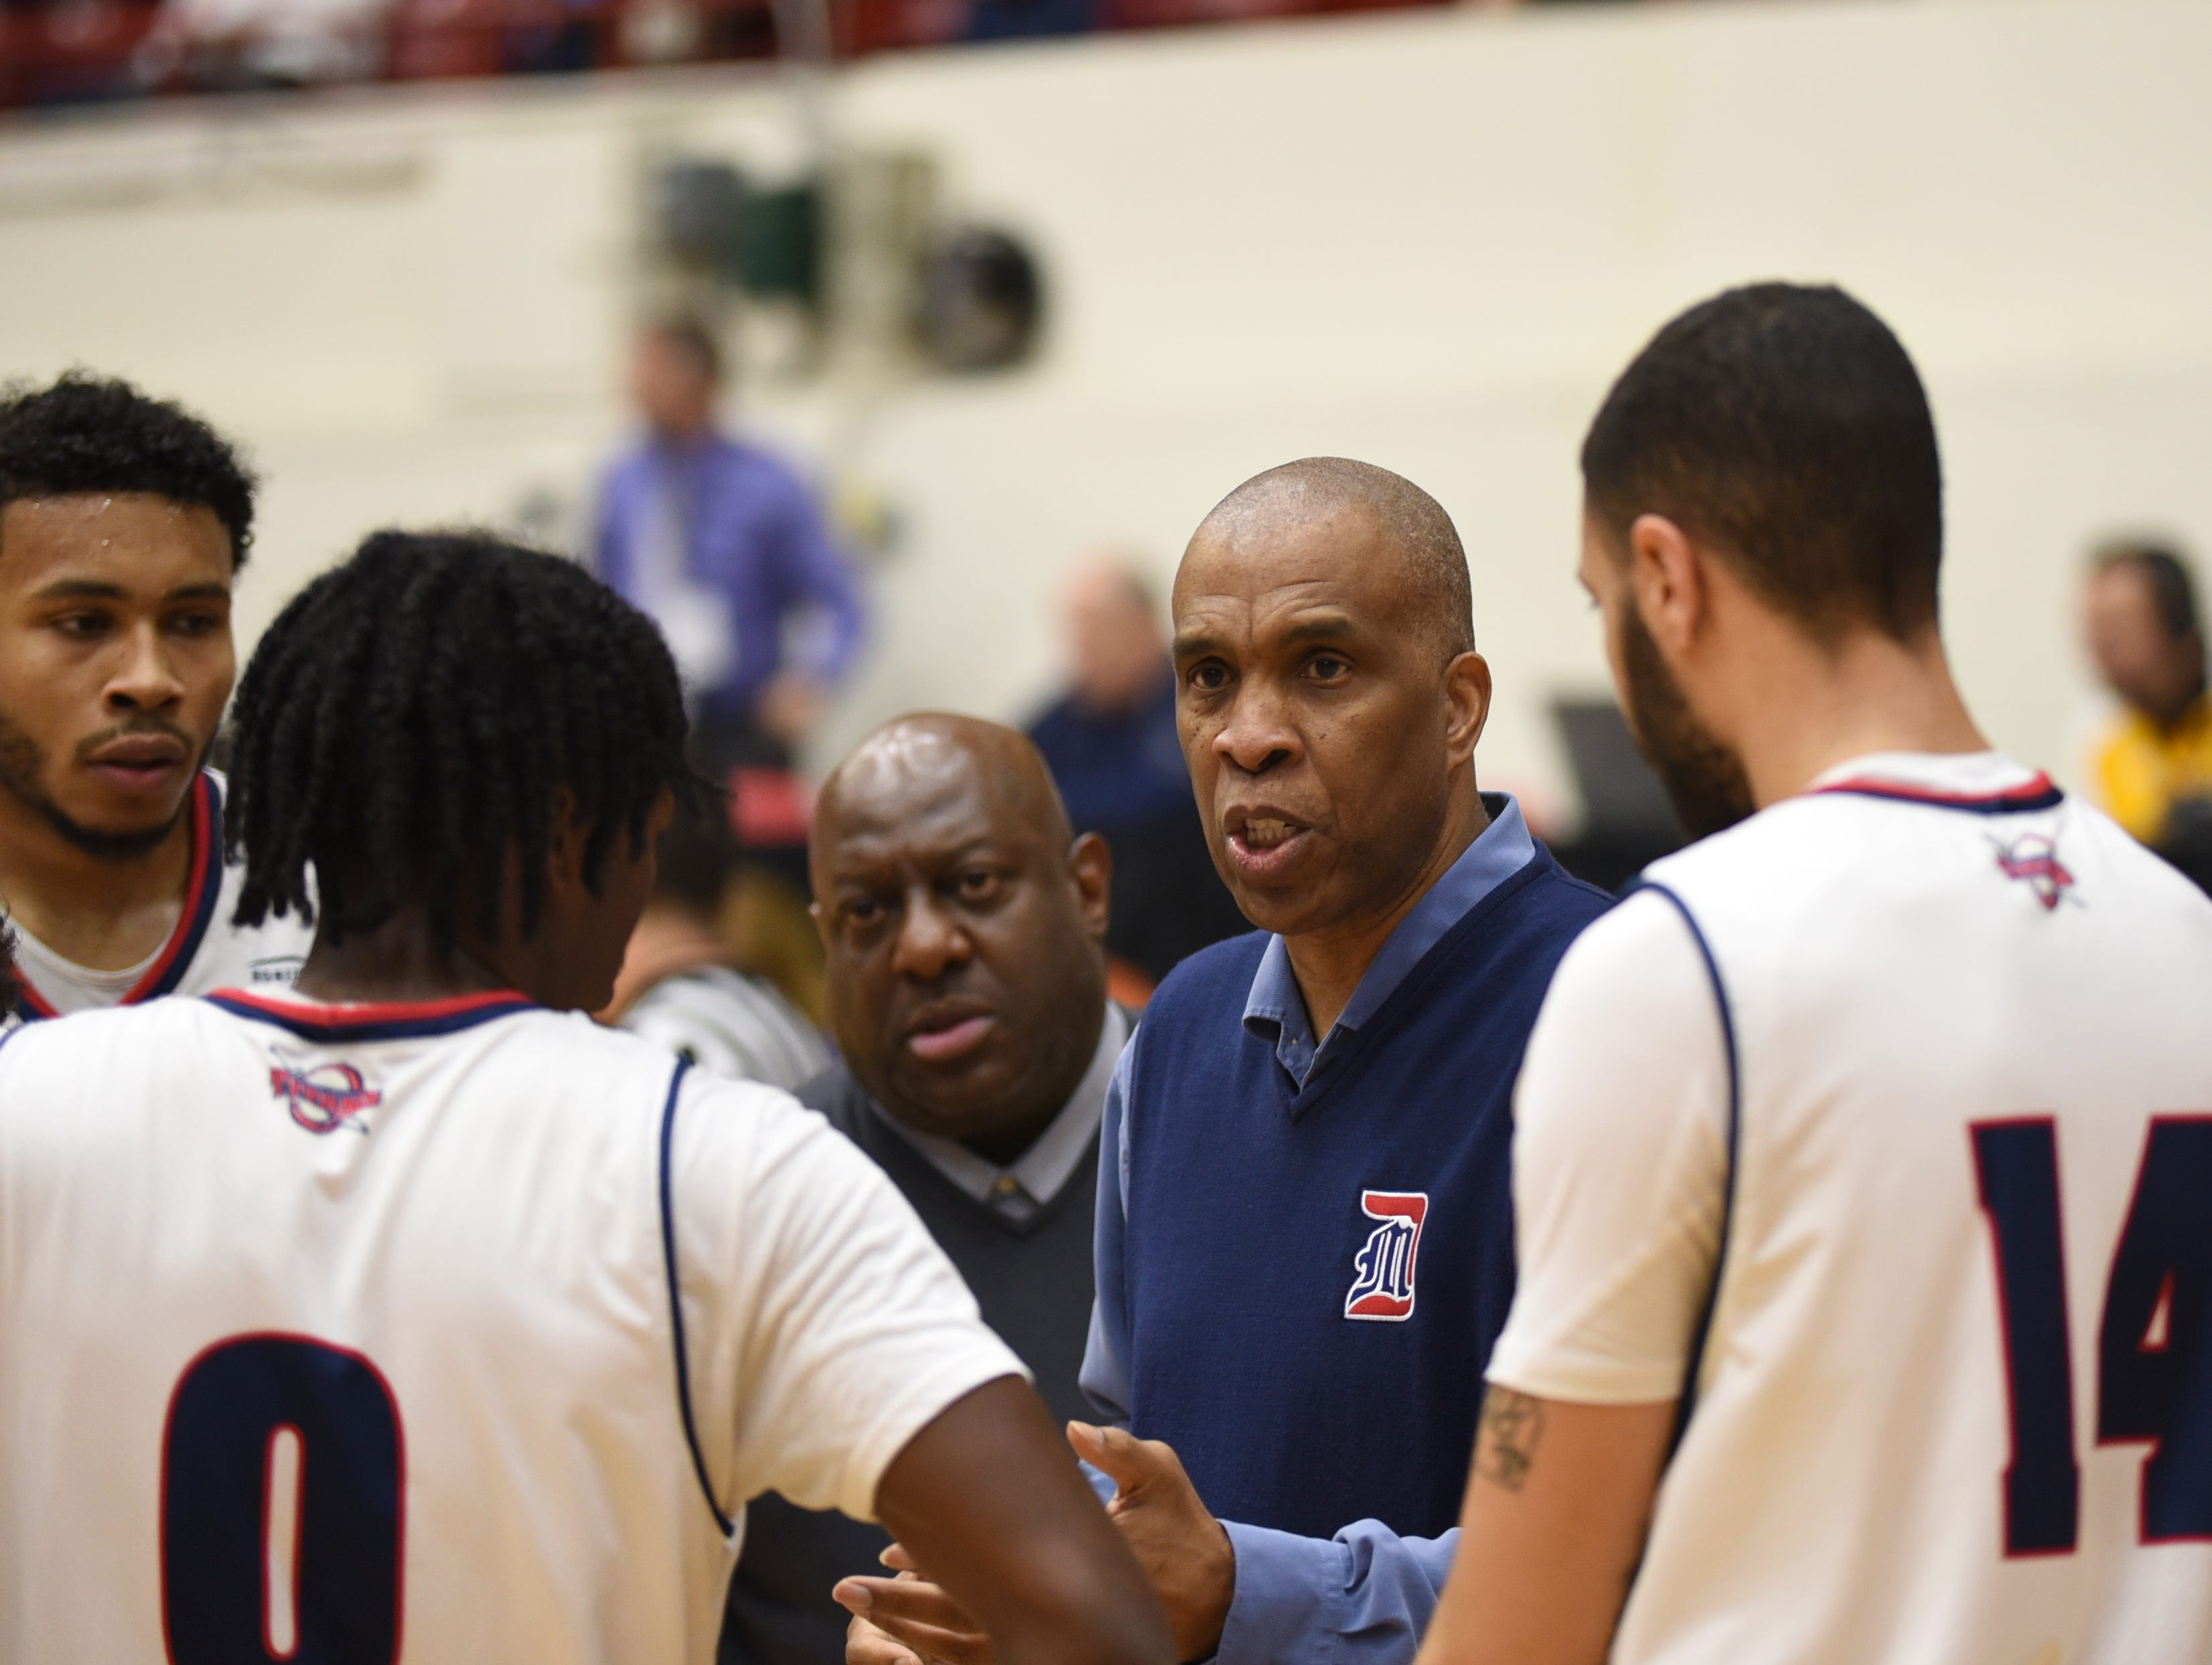 University of Detroit Mercy head basketball coach Mike Davis works with his son Antoine Davis (0) and Derrien King (14) during a timeout.